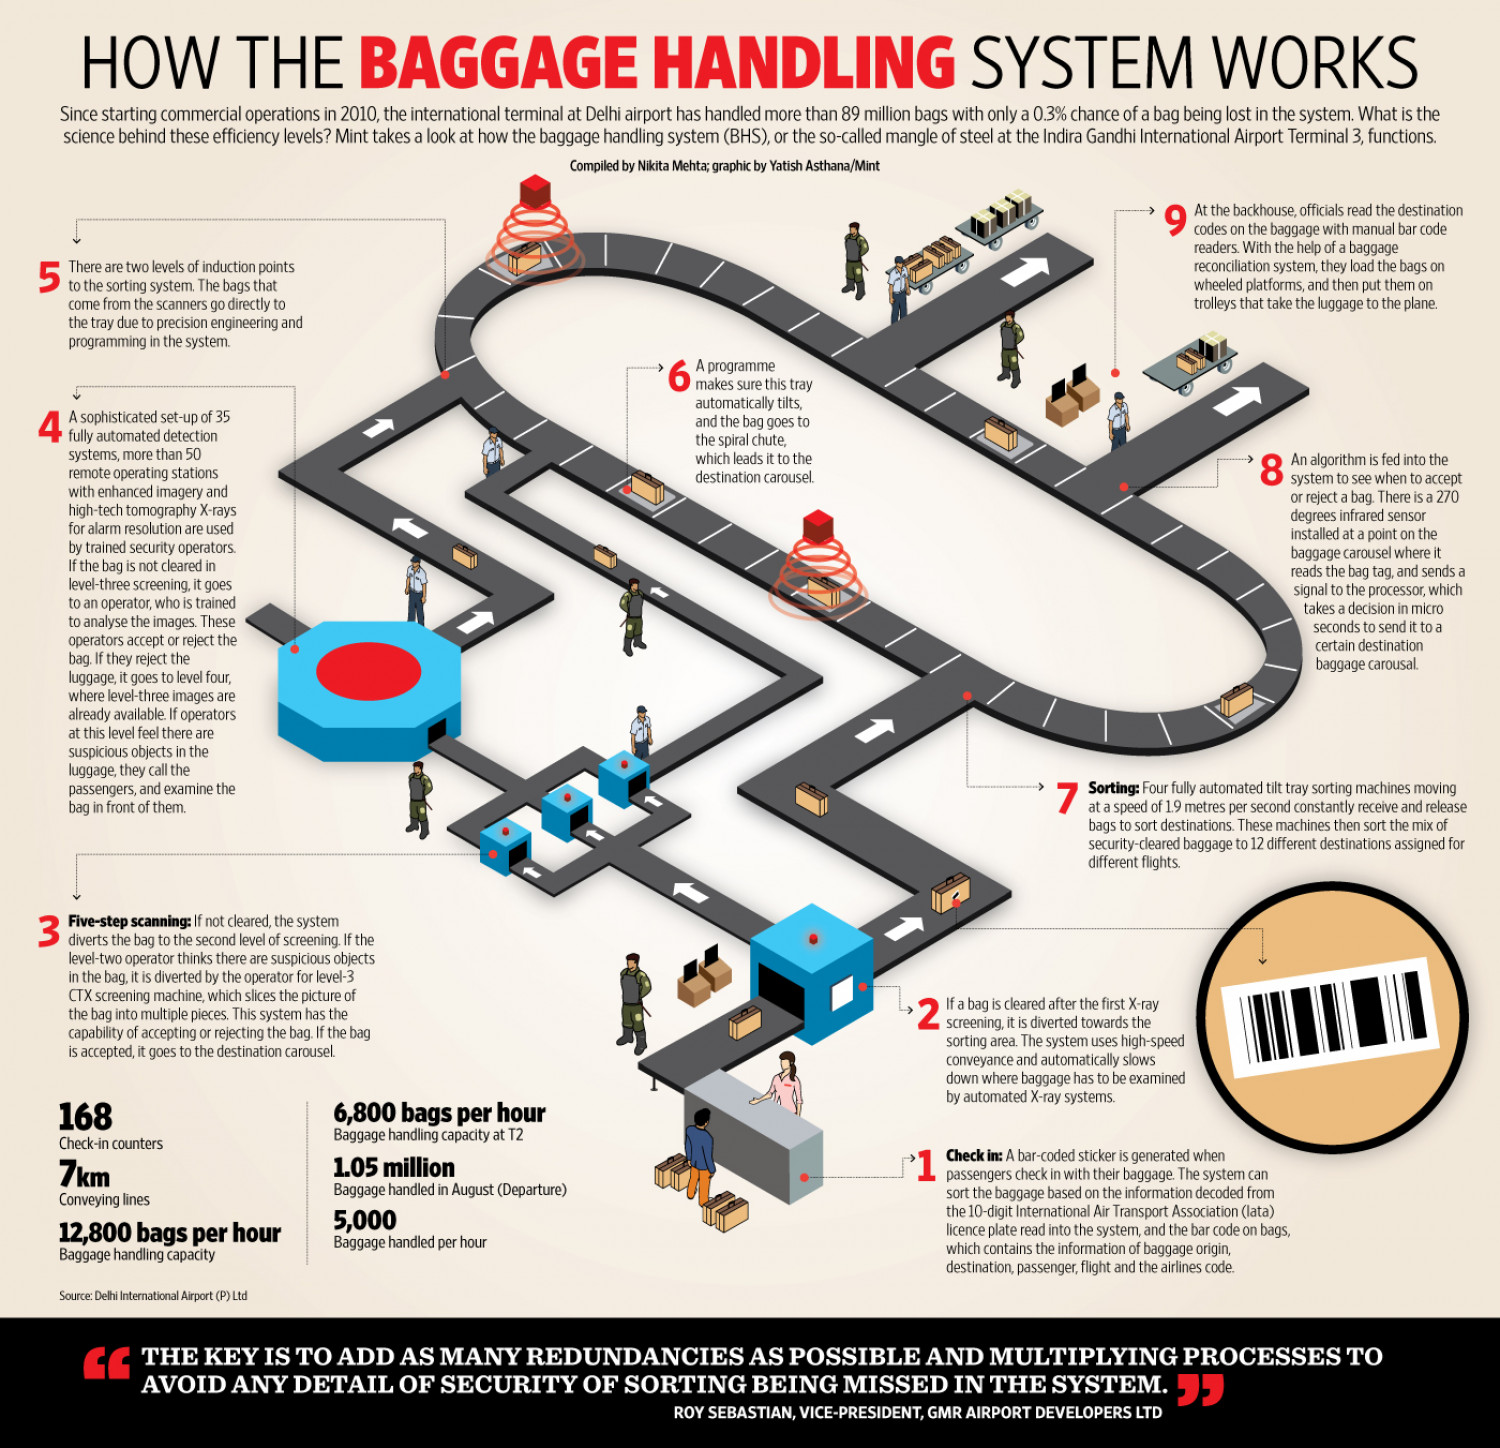 How The Baggage Handling System Works